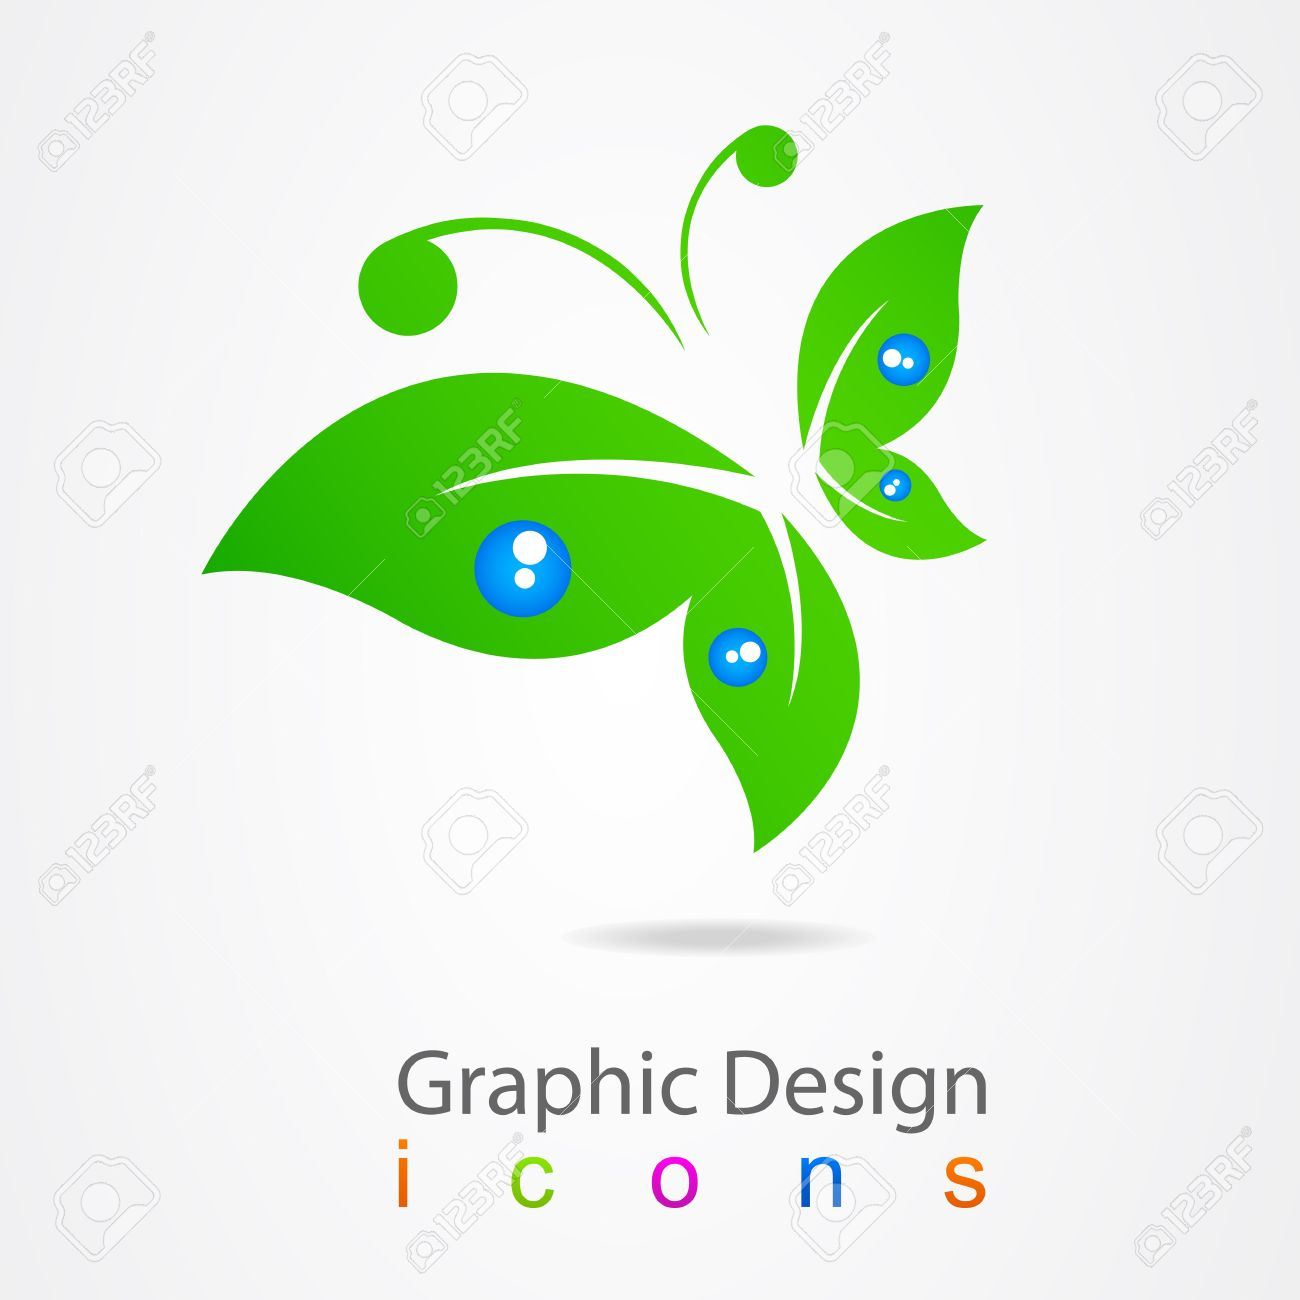 Graphic Designers Logos Graphic Design Logo Butterfly